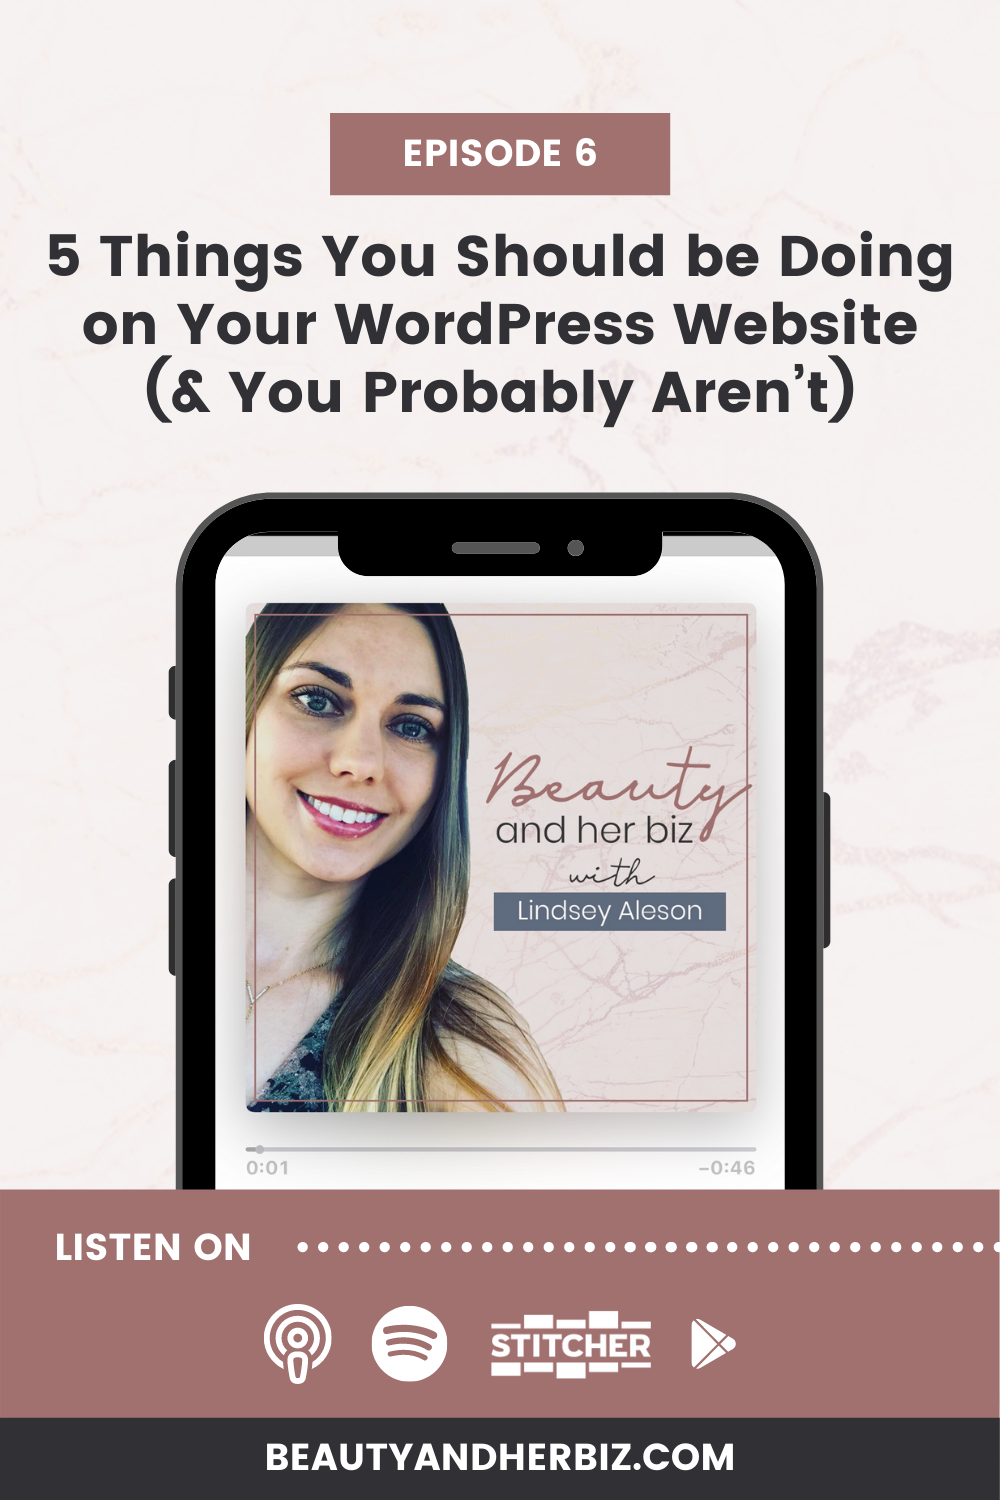 Episode 6 | 5 Things You Should be Doing on Your WordPress Website (& You Probably Aren't)